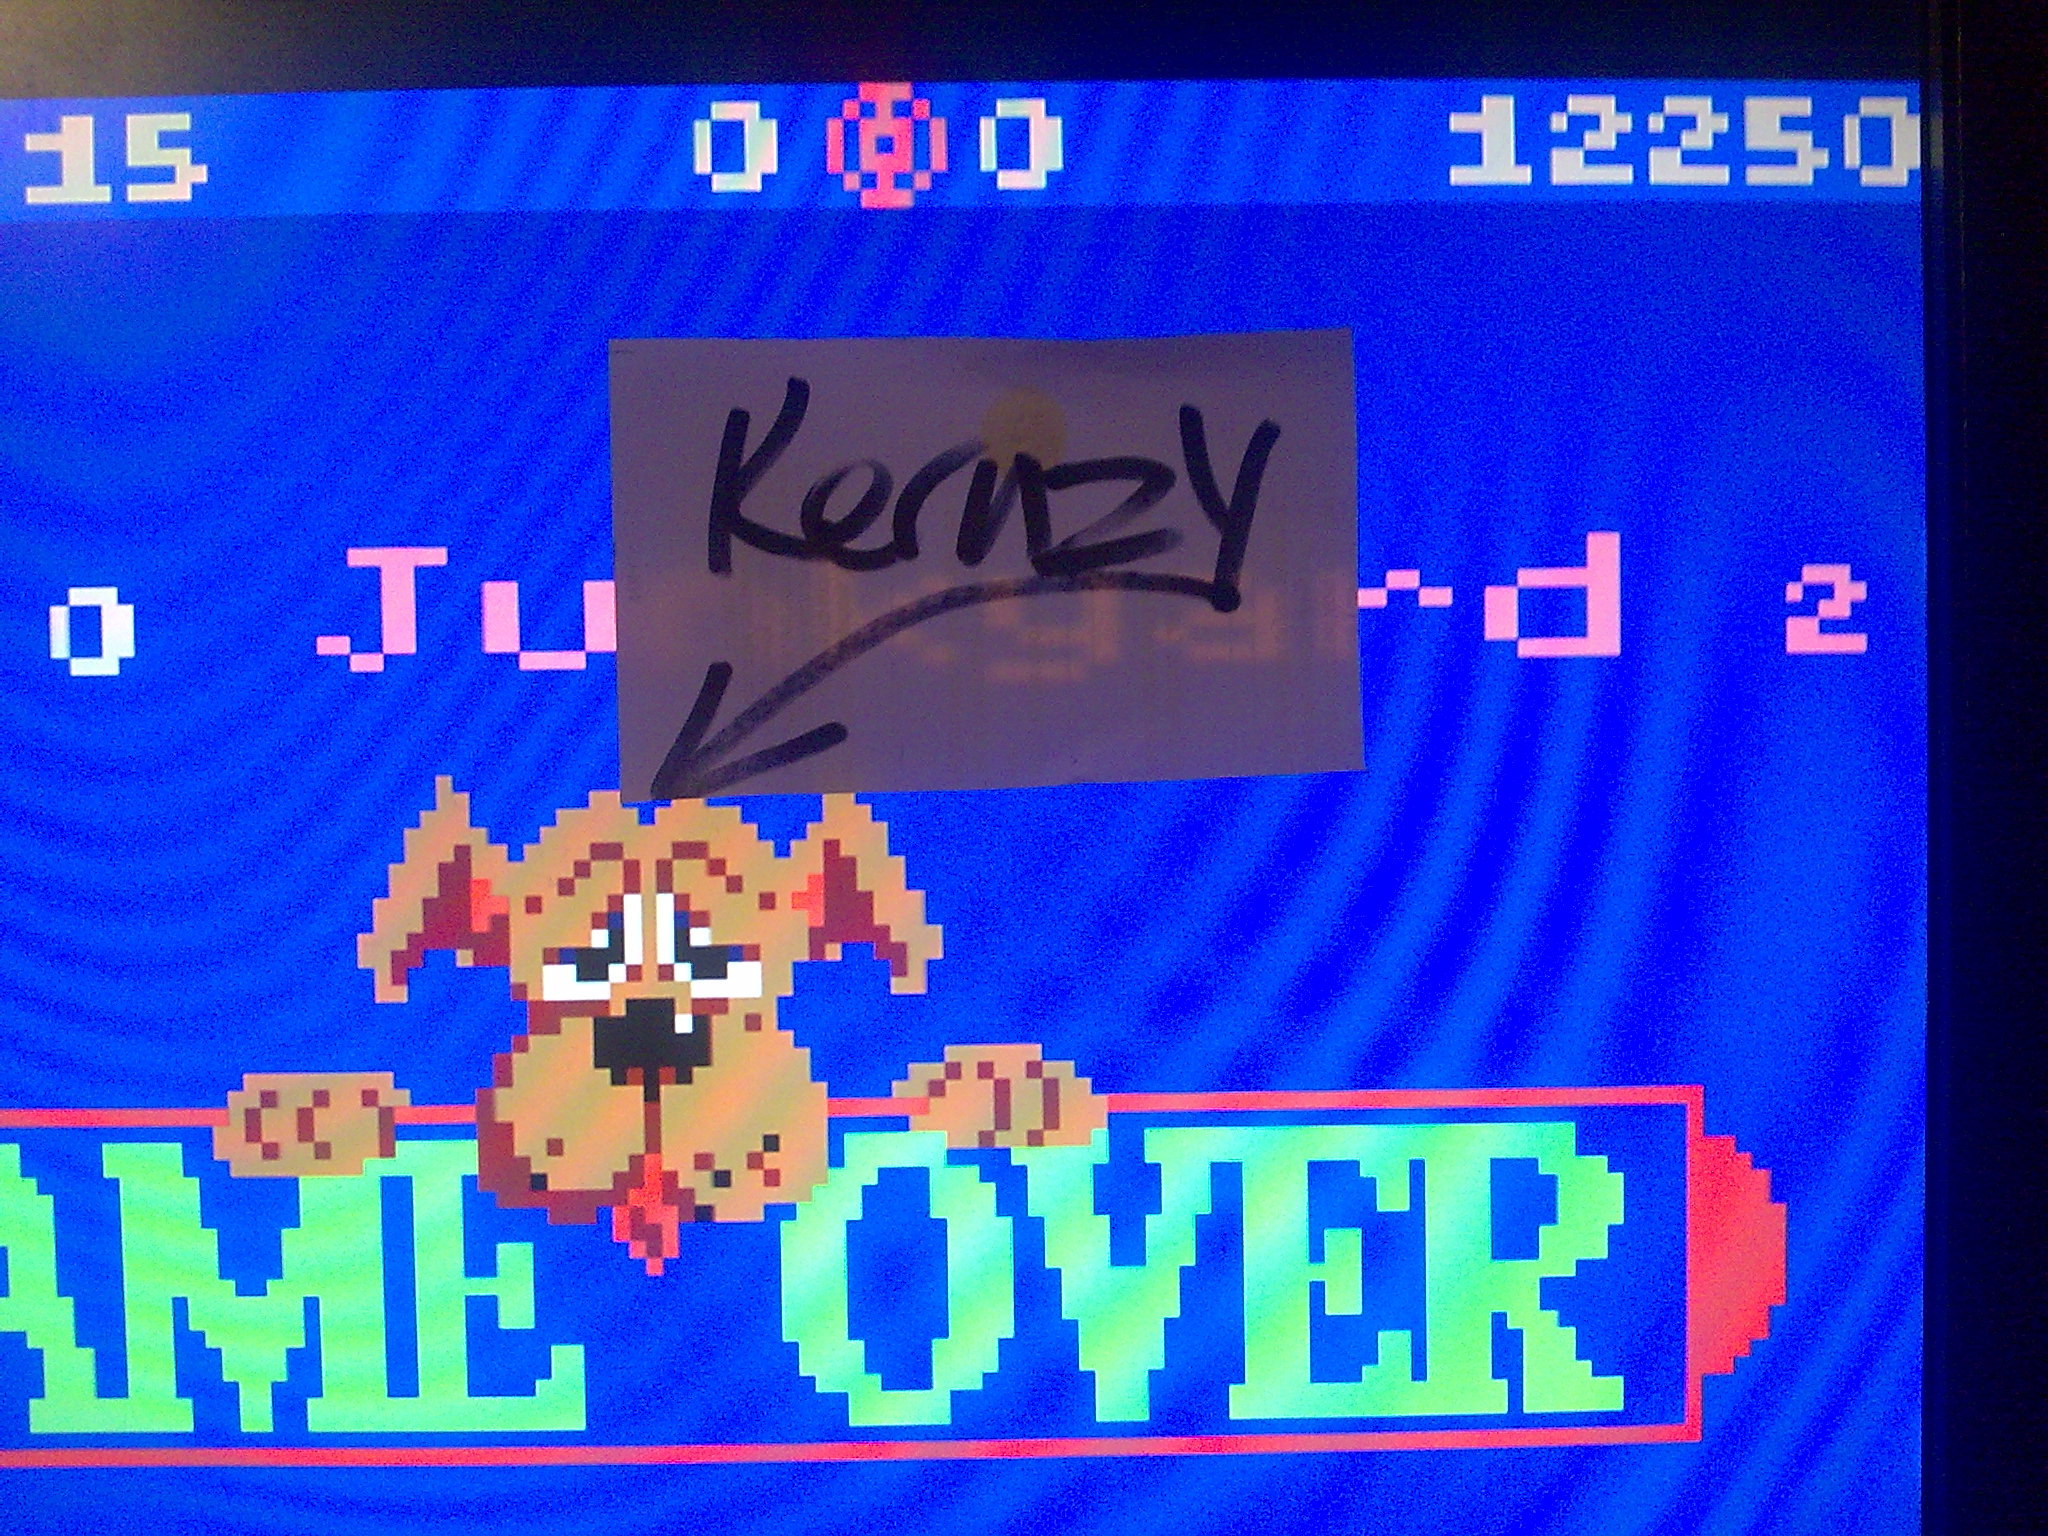 kernzy: Scrapyard Dog (Atari Lynx Emulated) 12,250 points on 2014-10-19 01:06:09